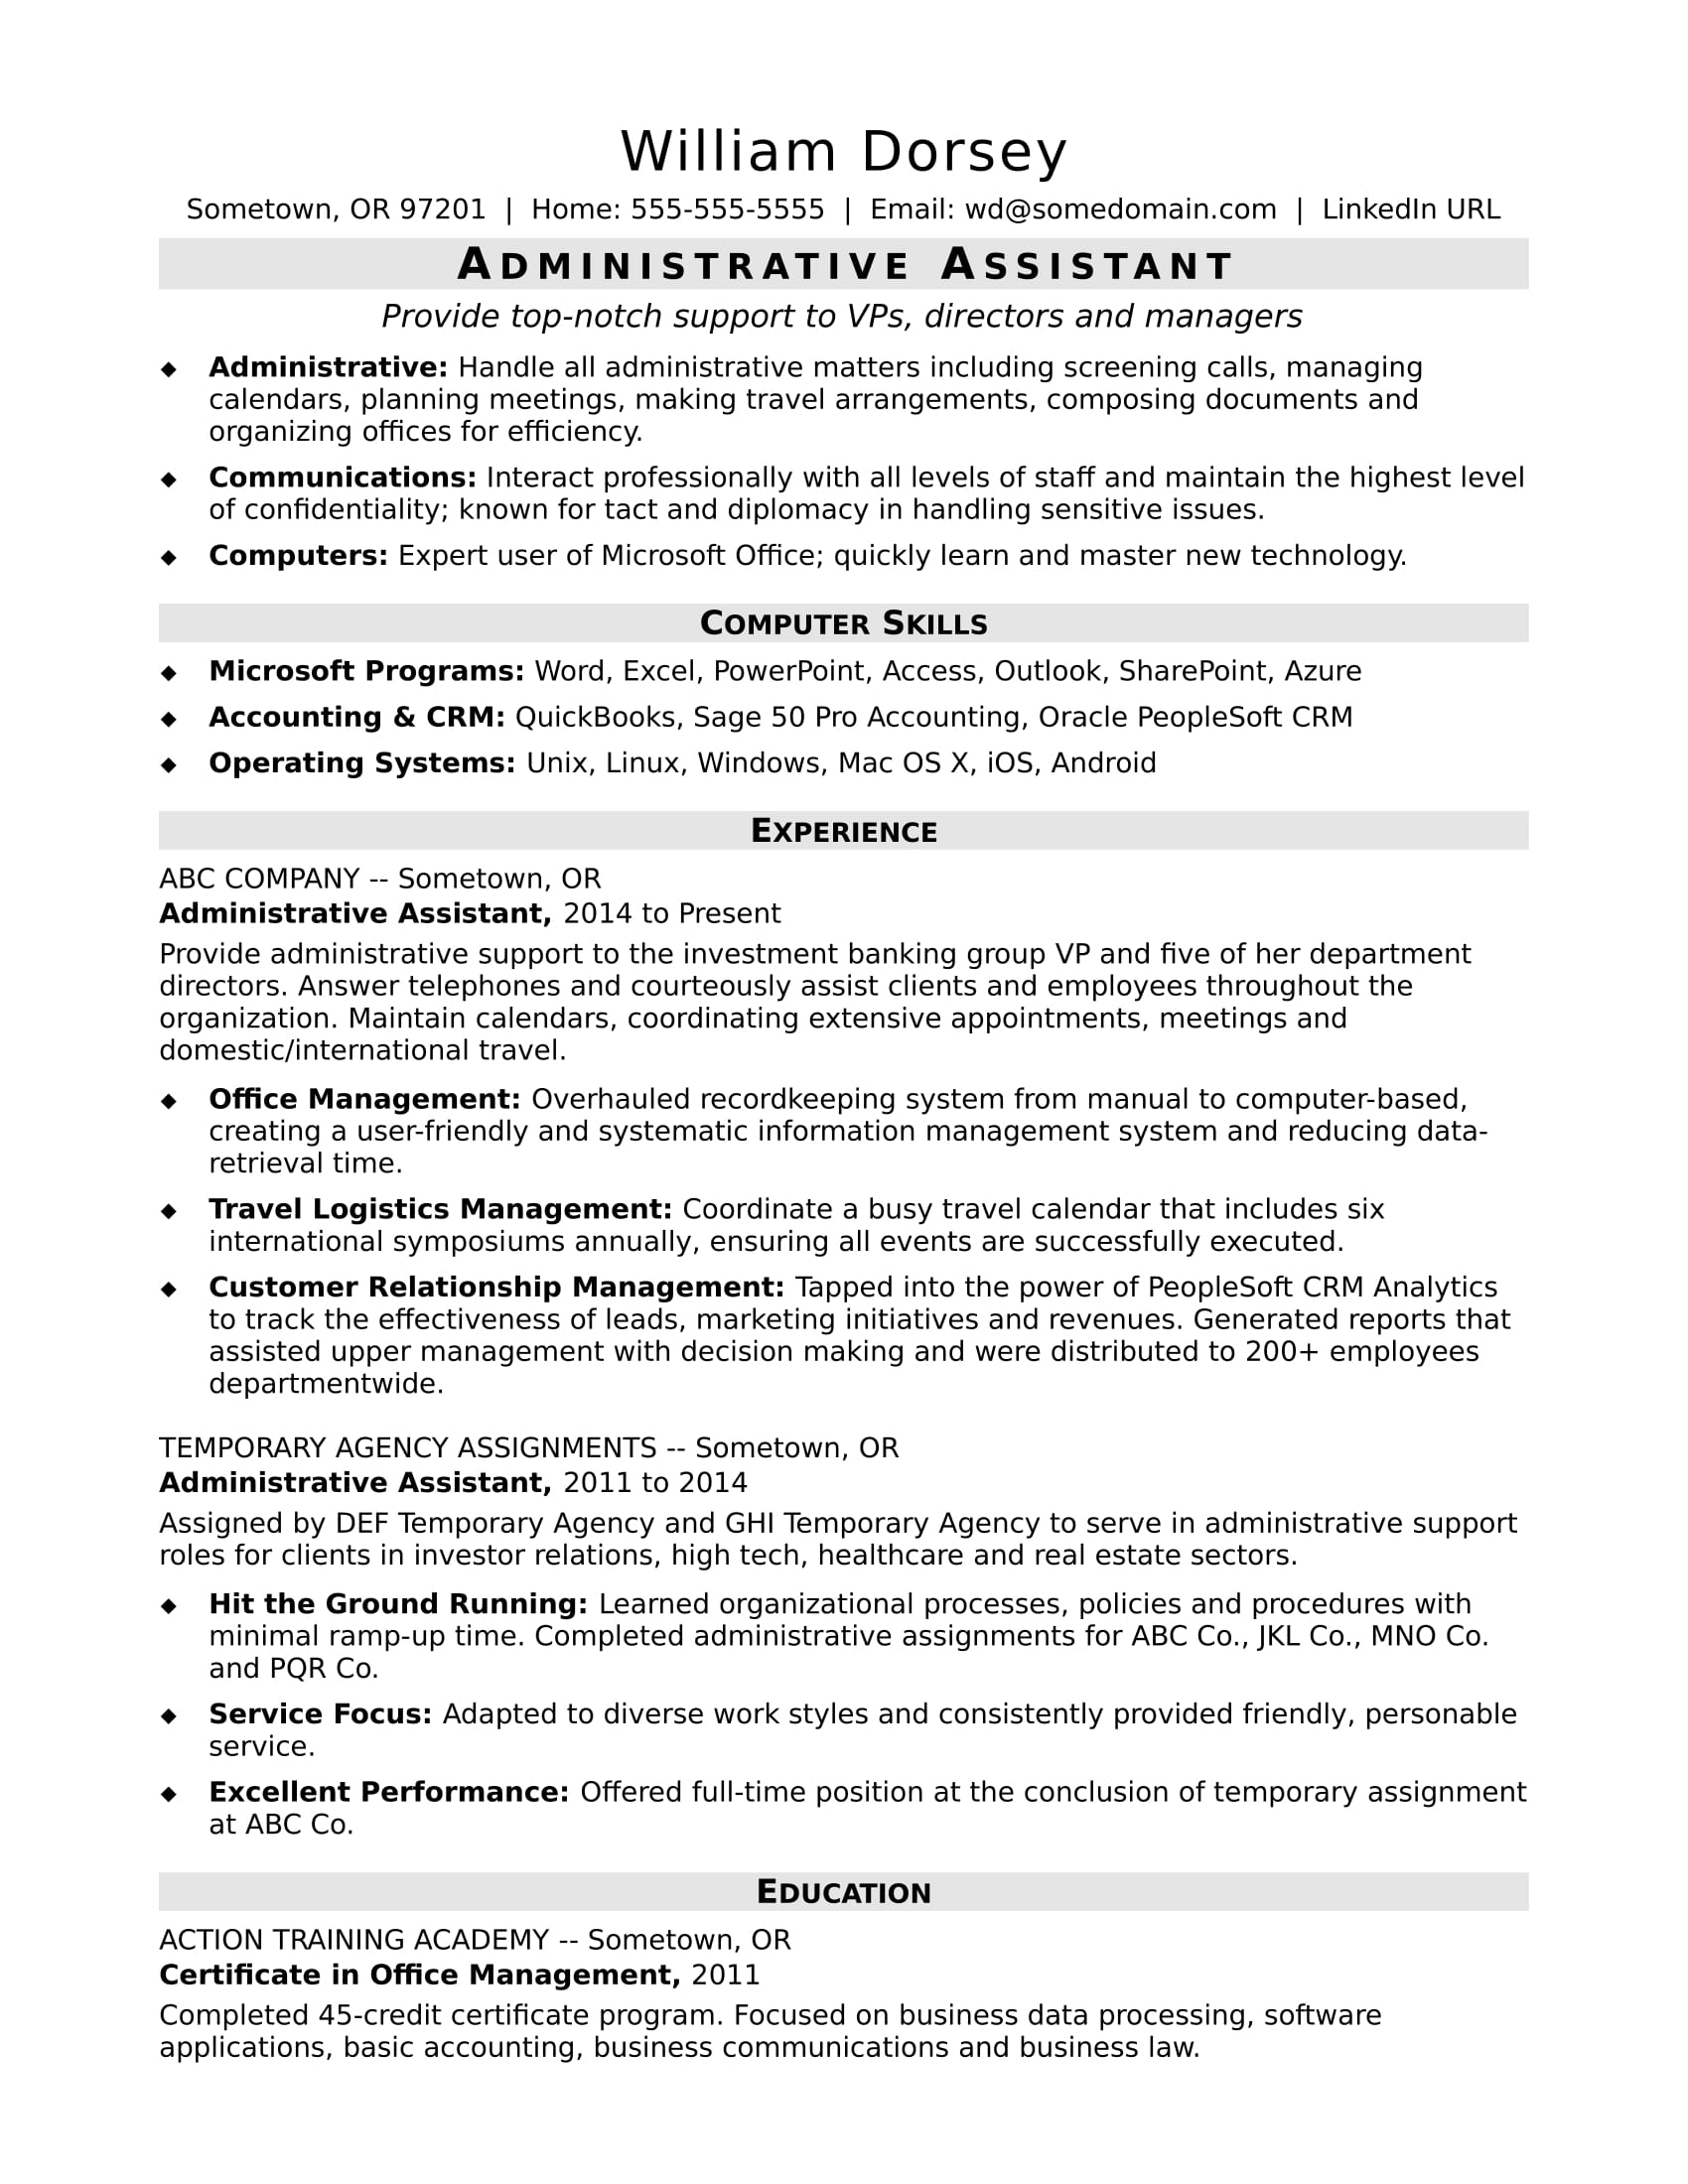 Beautiful Sample Resume For A Midlevel Administrative Assistant On Administrative Professional Resume